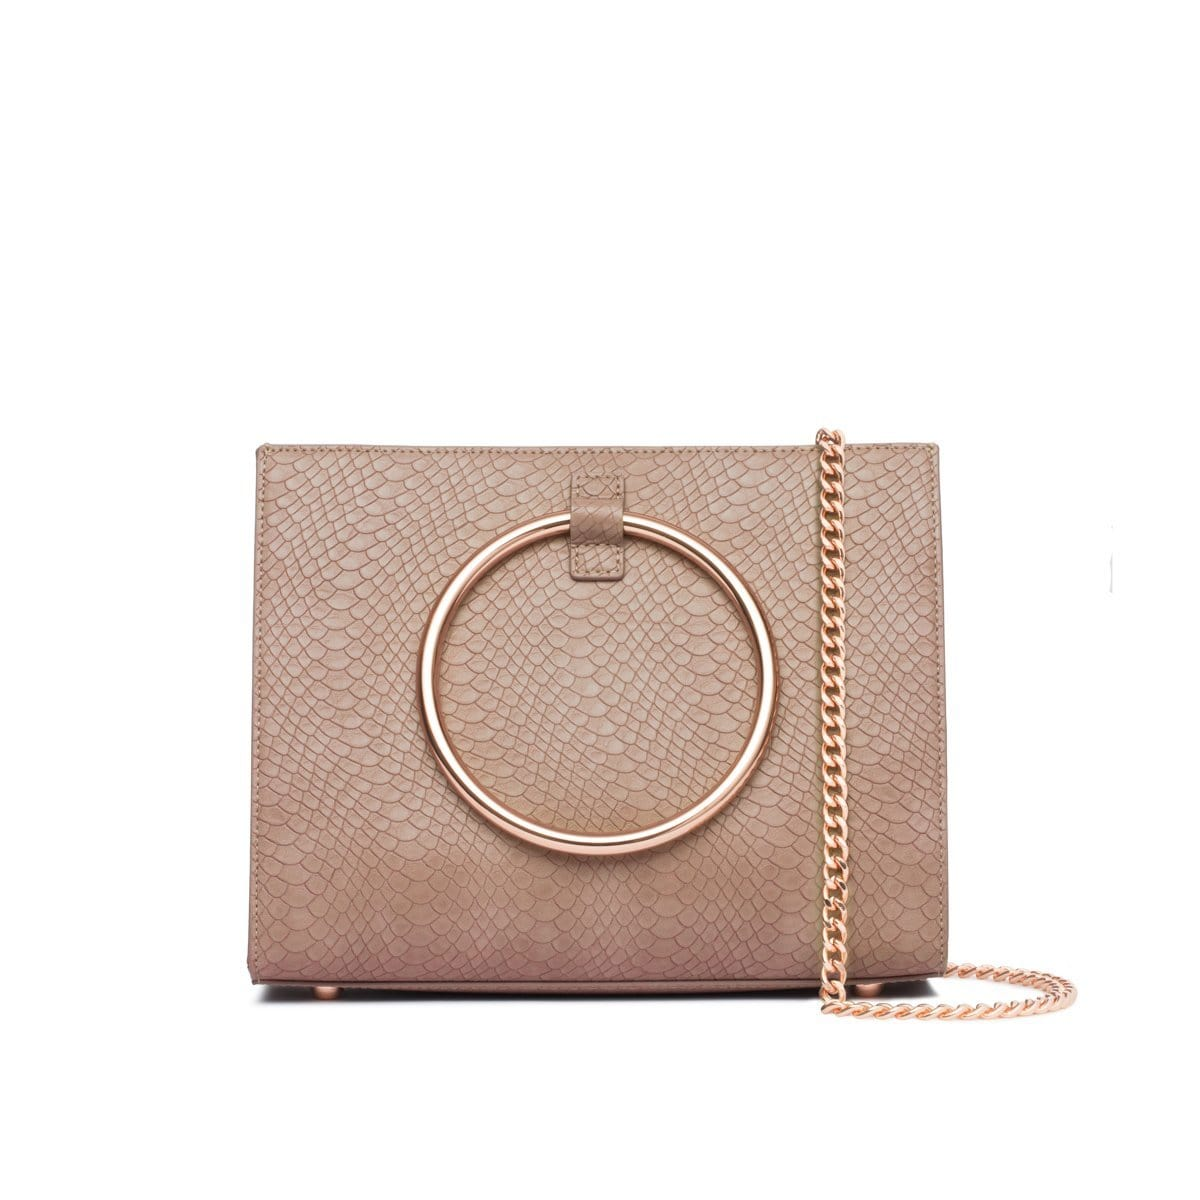 Dusky Rose Moda Handbag Rose Gold